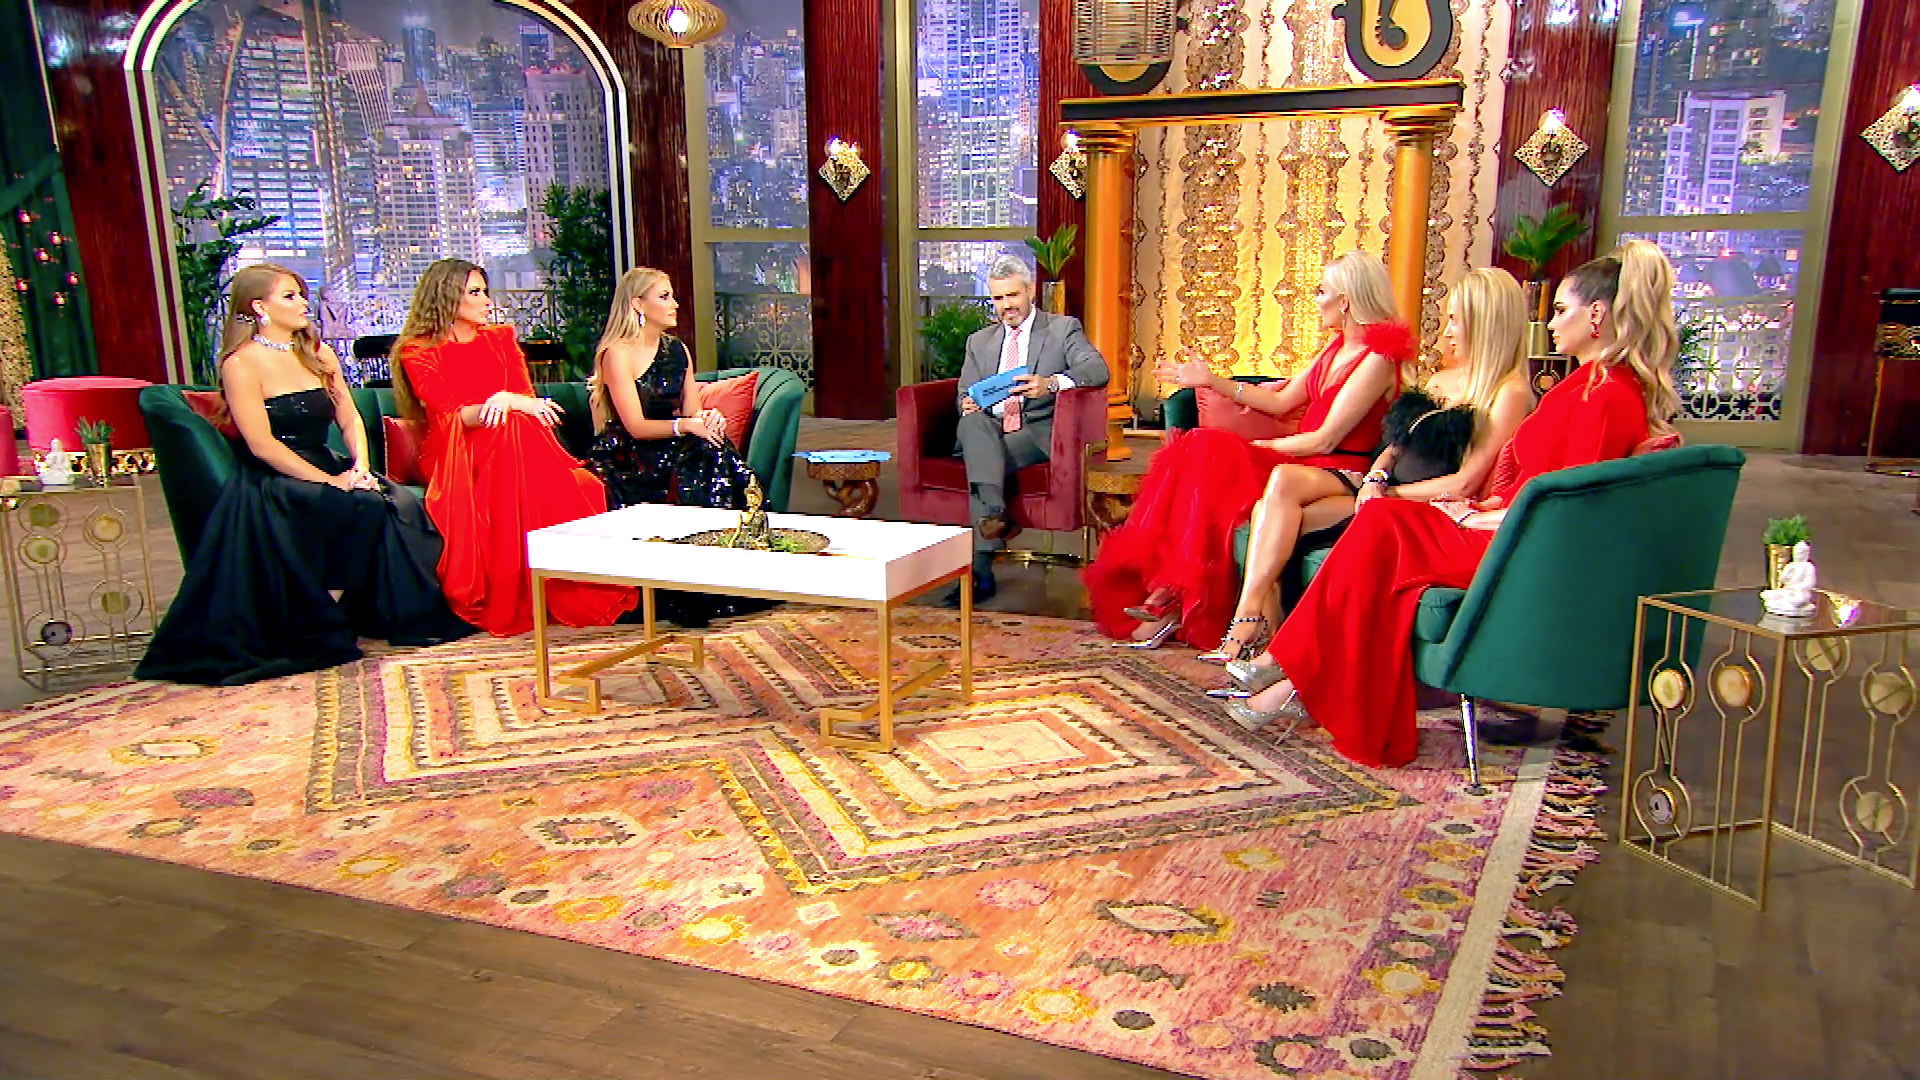 Your First Look at The Real Housewives of Dallas Season 4 Reunion